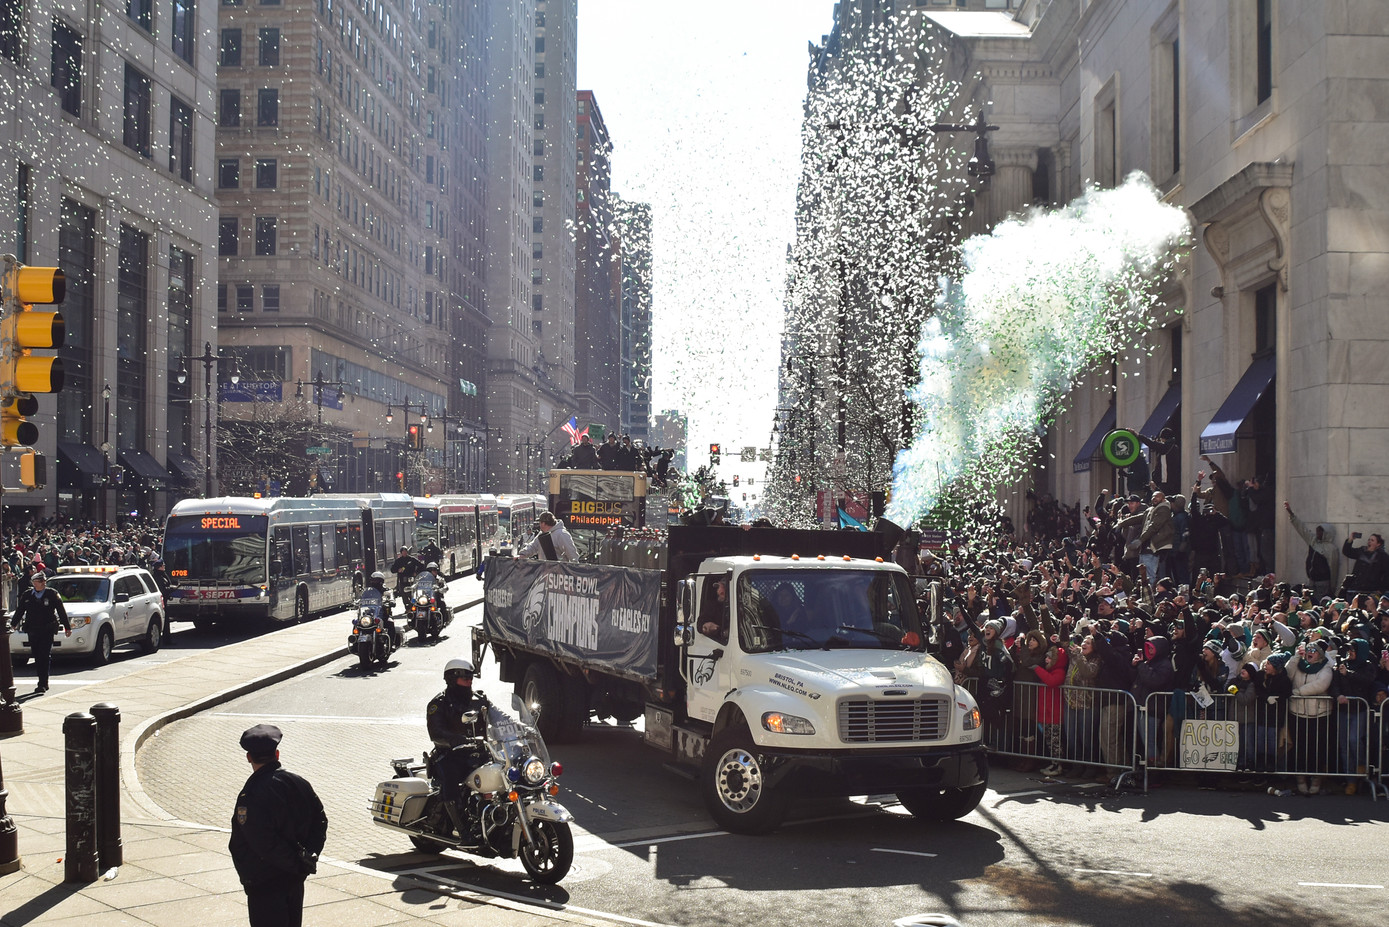 2-8-2018_EaglesParade_credKateFrese-15.j